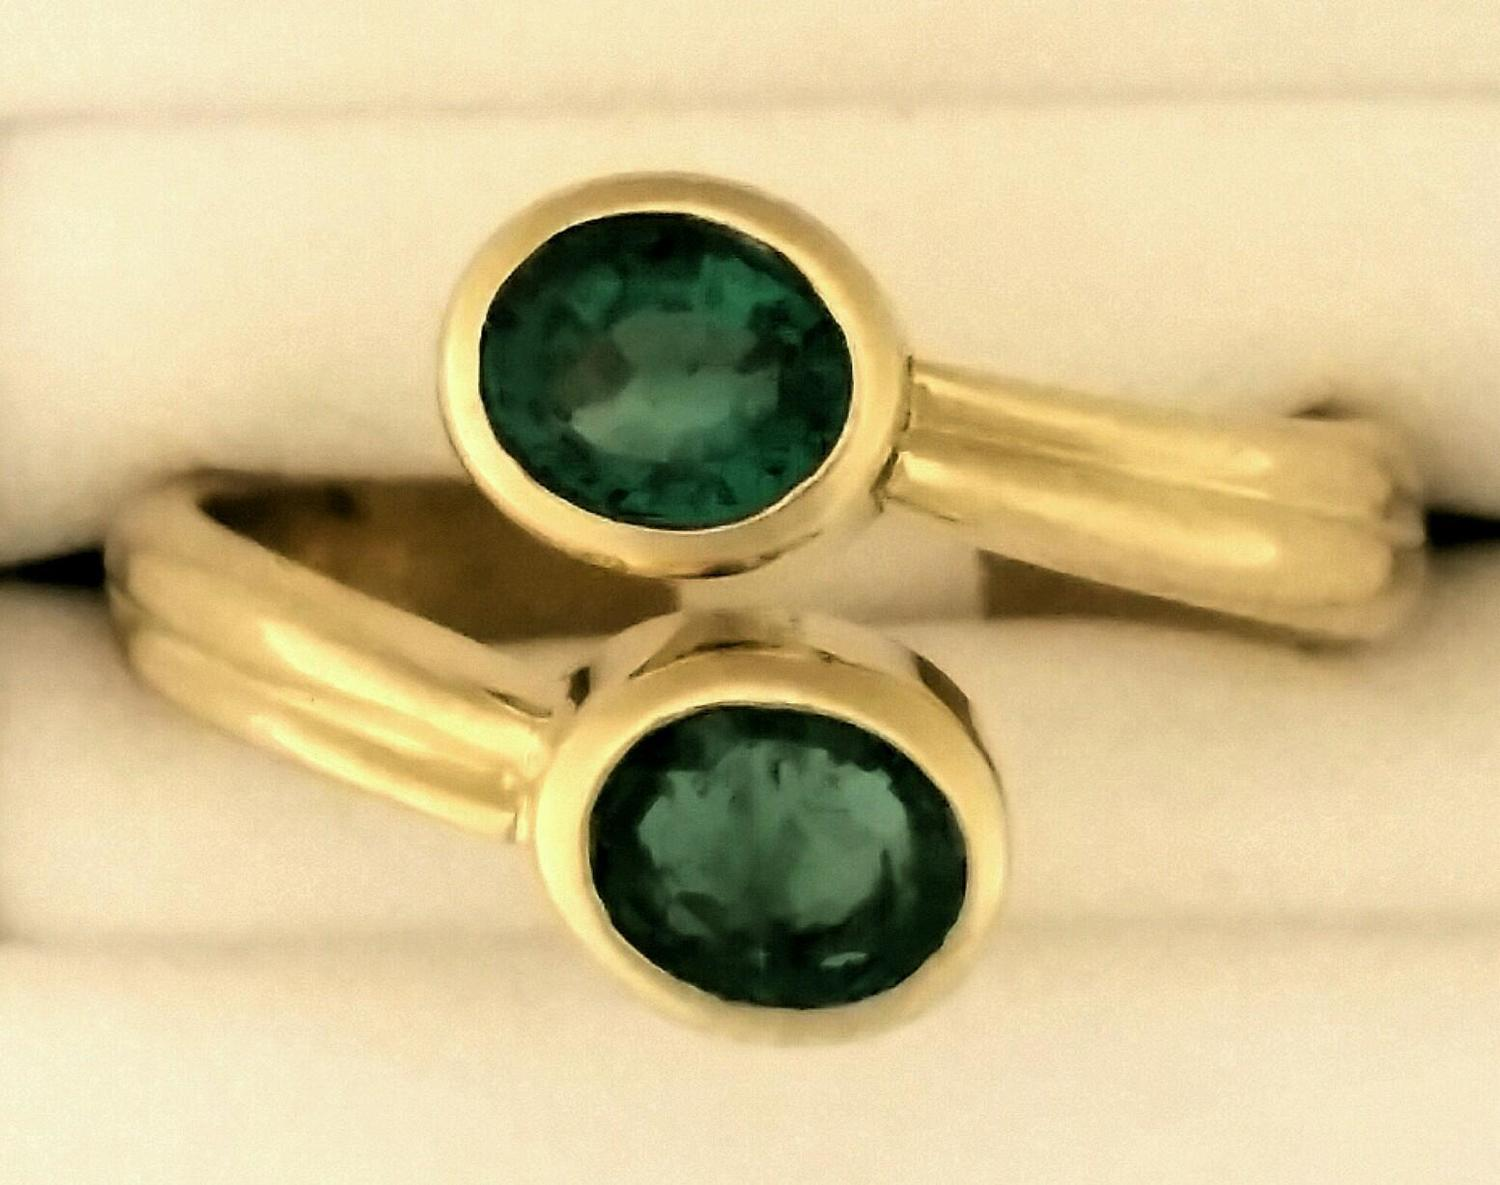 Bezel set, oval emeralds adorn this 18K gold ring